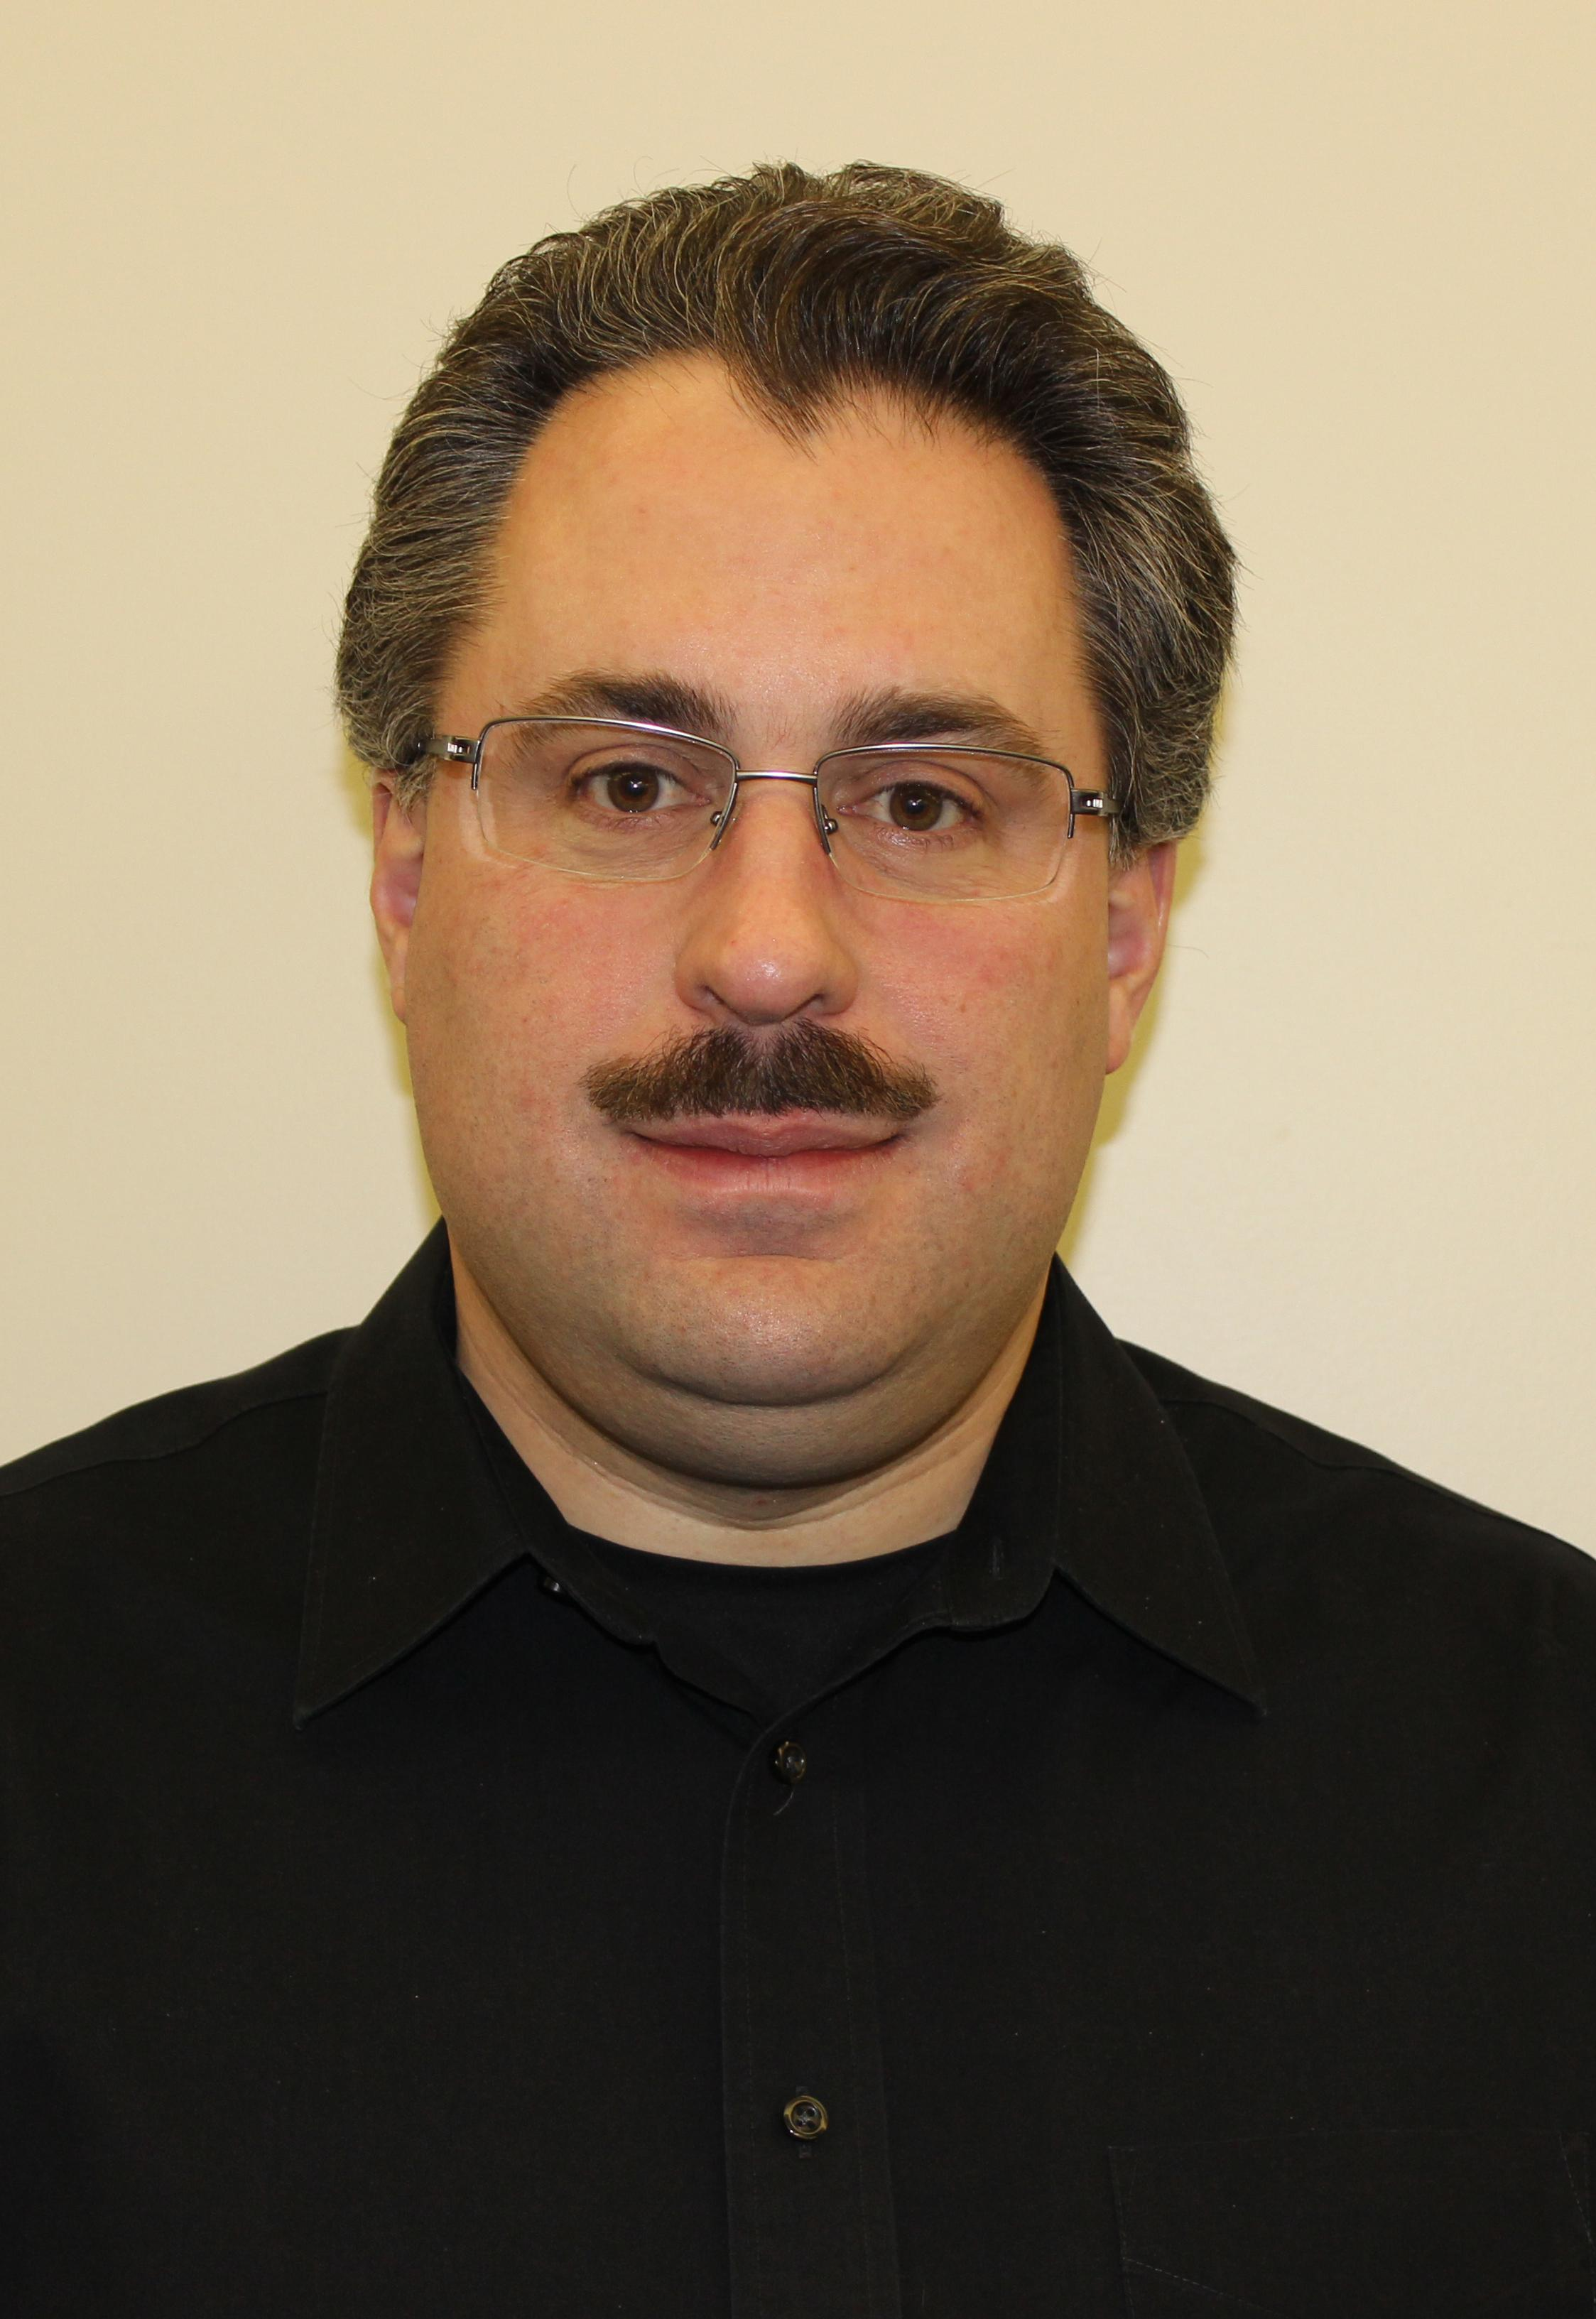 Staff Photo of Michael Paestella